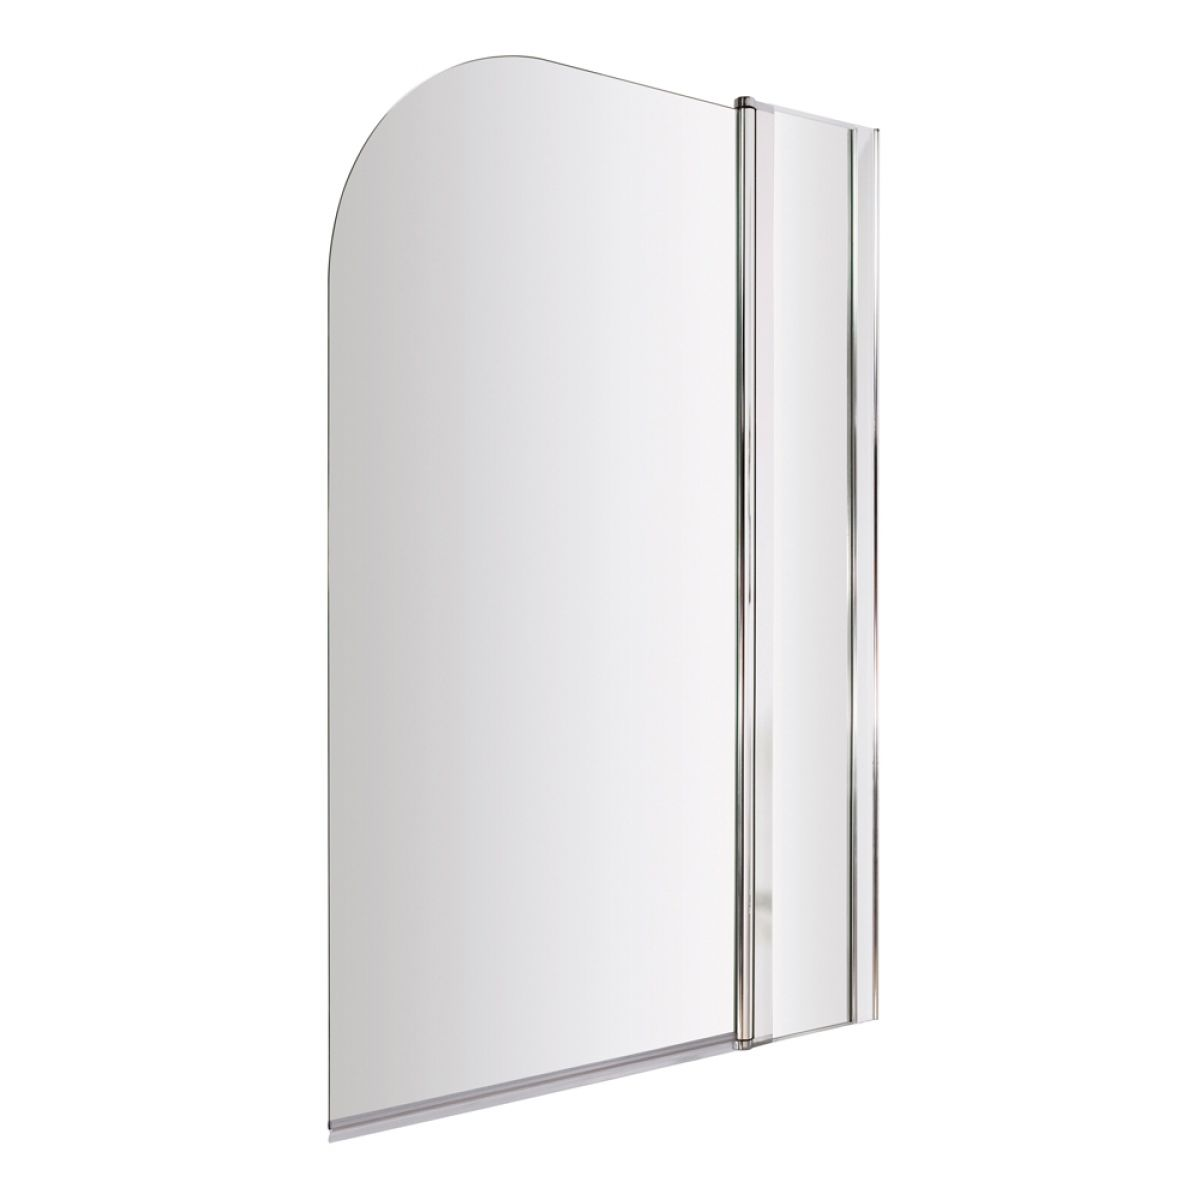 Premier Straight Curved Edge Bath Screen with Fixed Panel